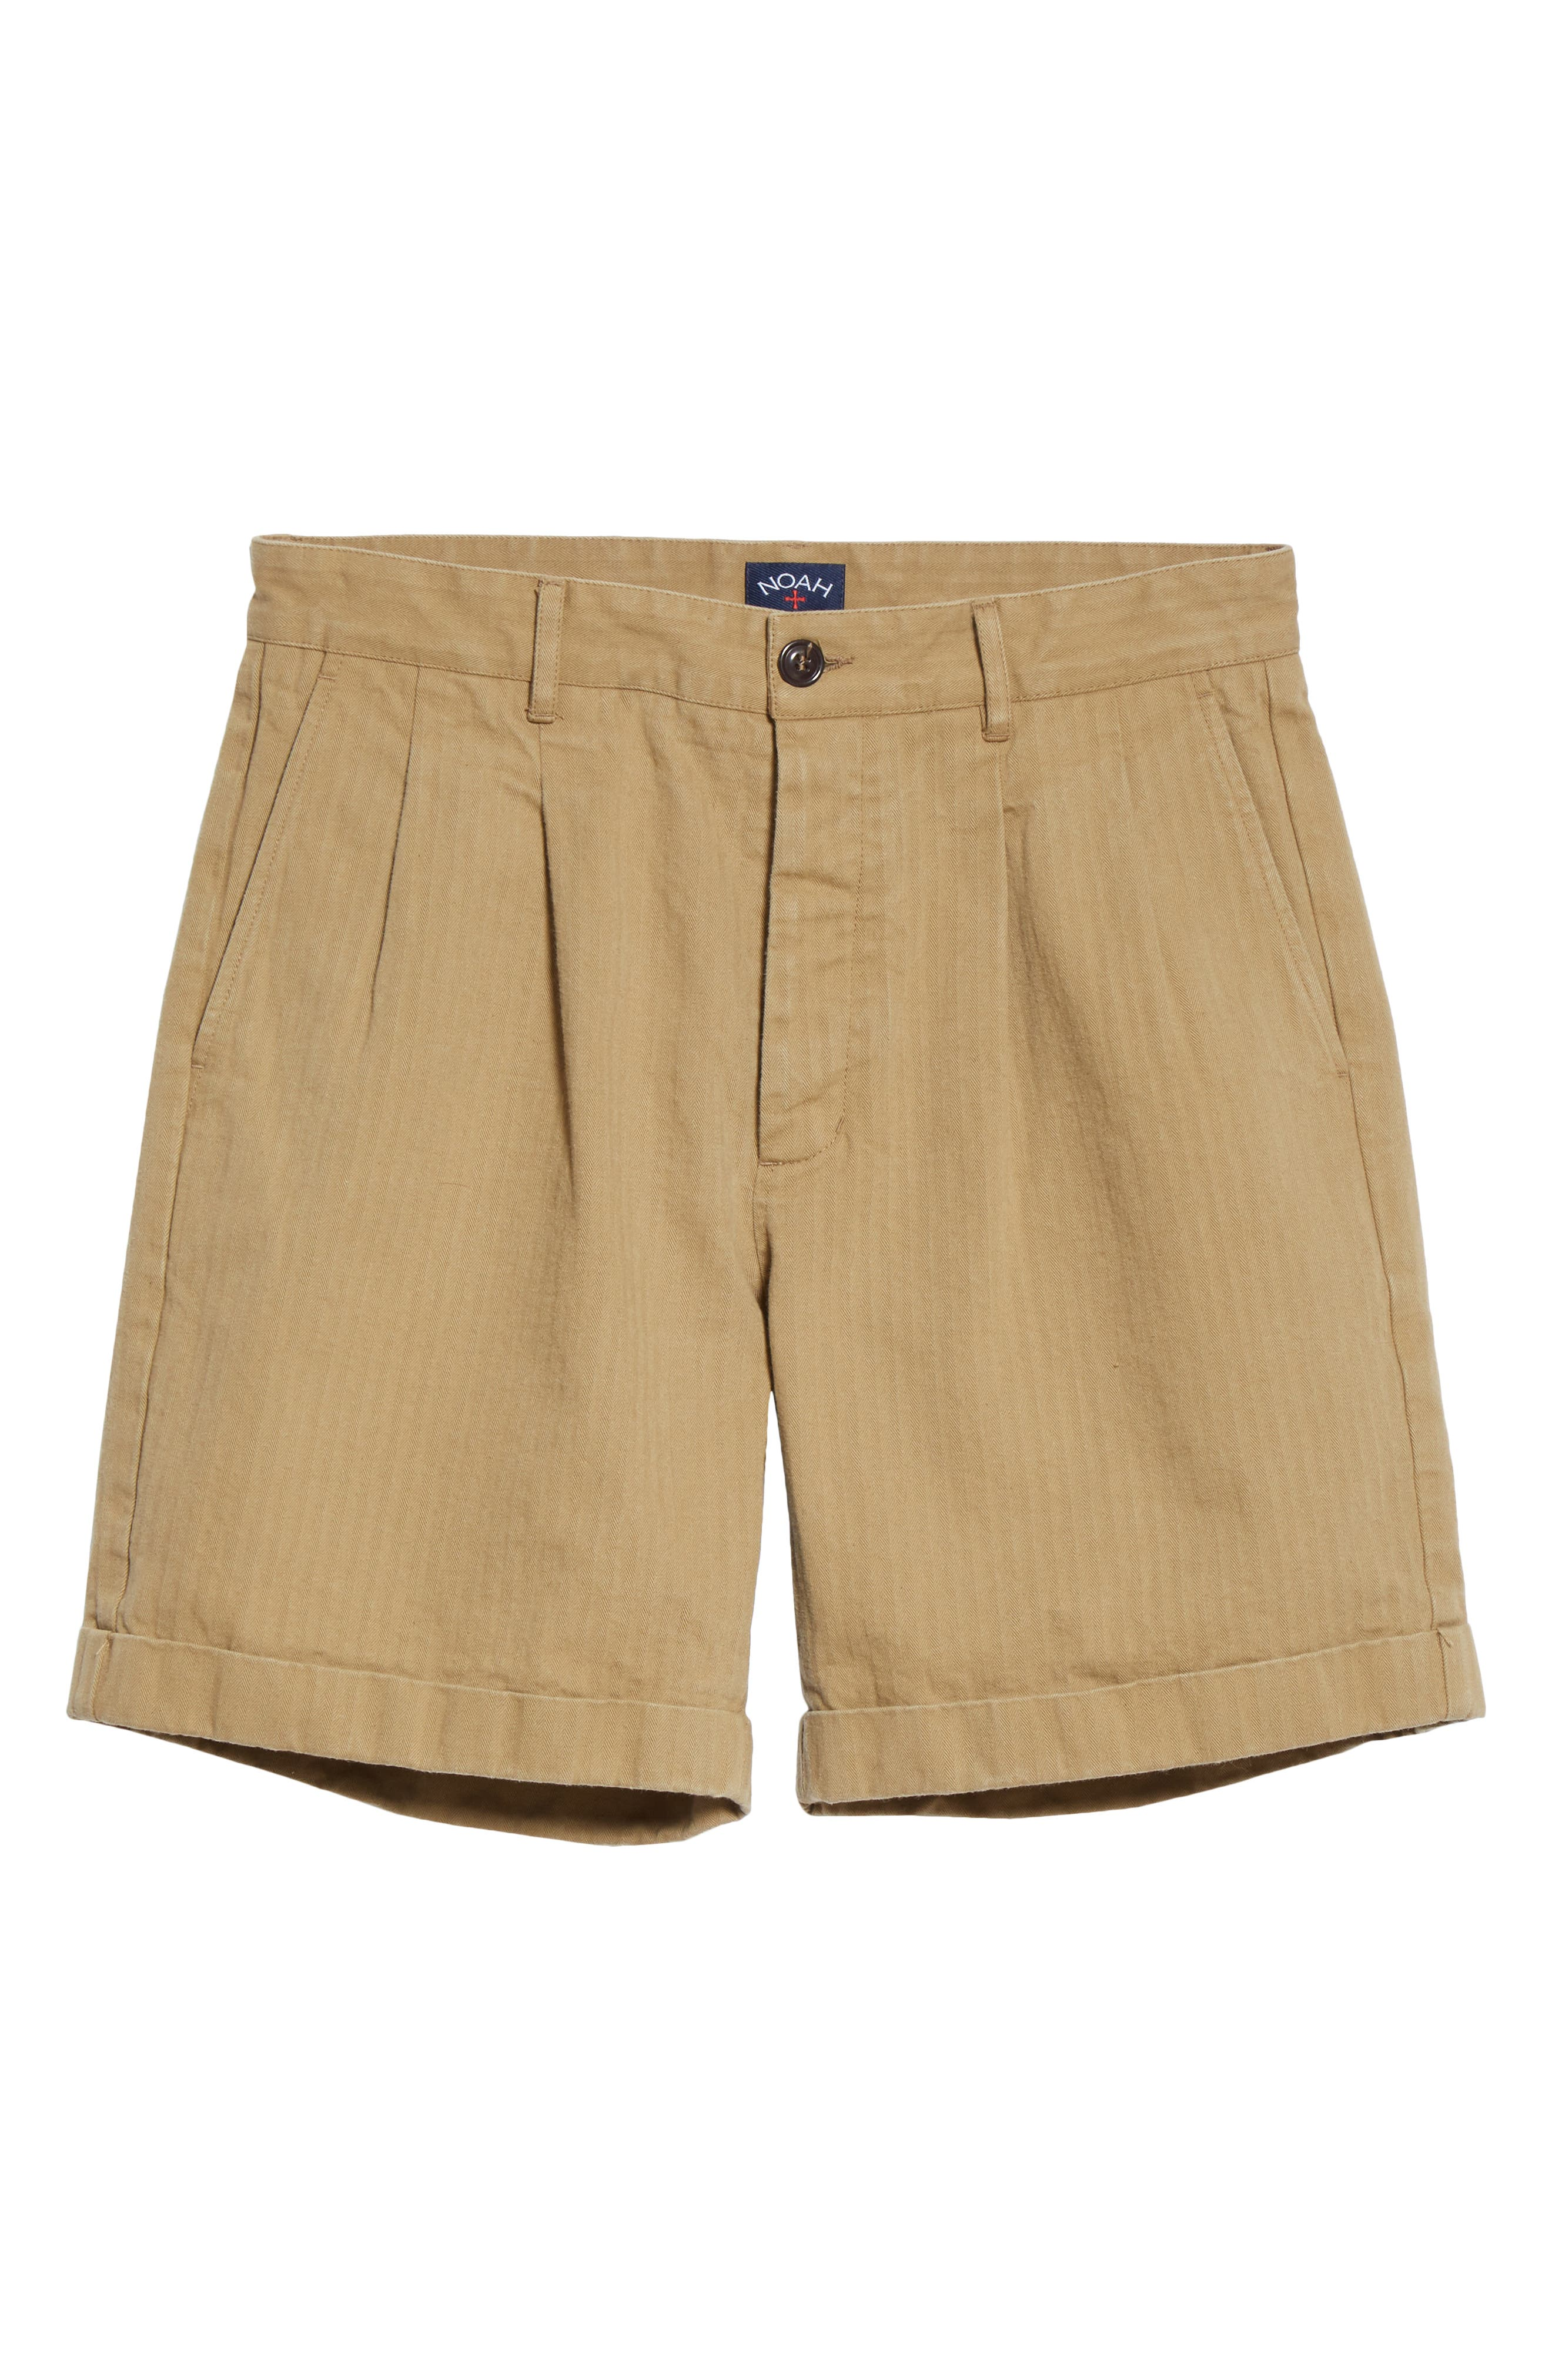 Vintage Style Mens Shorts Mens Noah Pleated Herringbone Shorts Size X-Large - Brown $114.00 AT vintagedancer.com